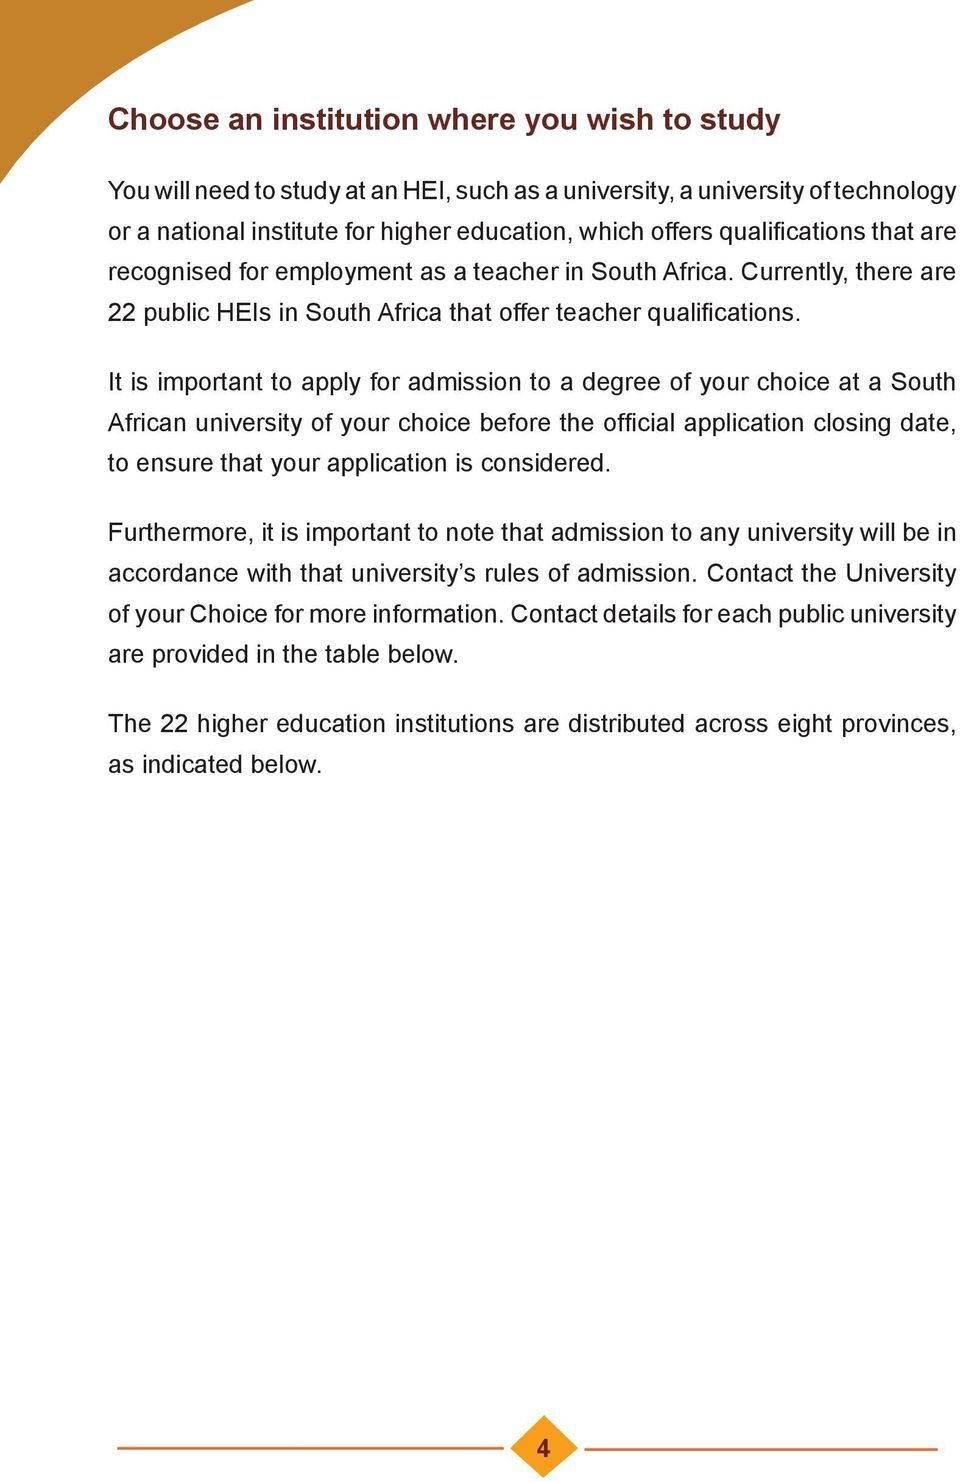 It is important to apply for admission to a degree of your choice at a South African university of your choice before the official application closing date, to ensure that your application is